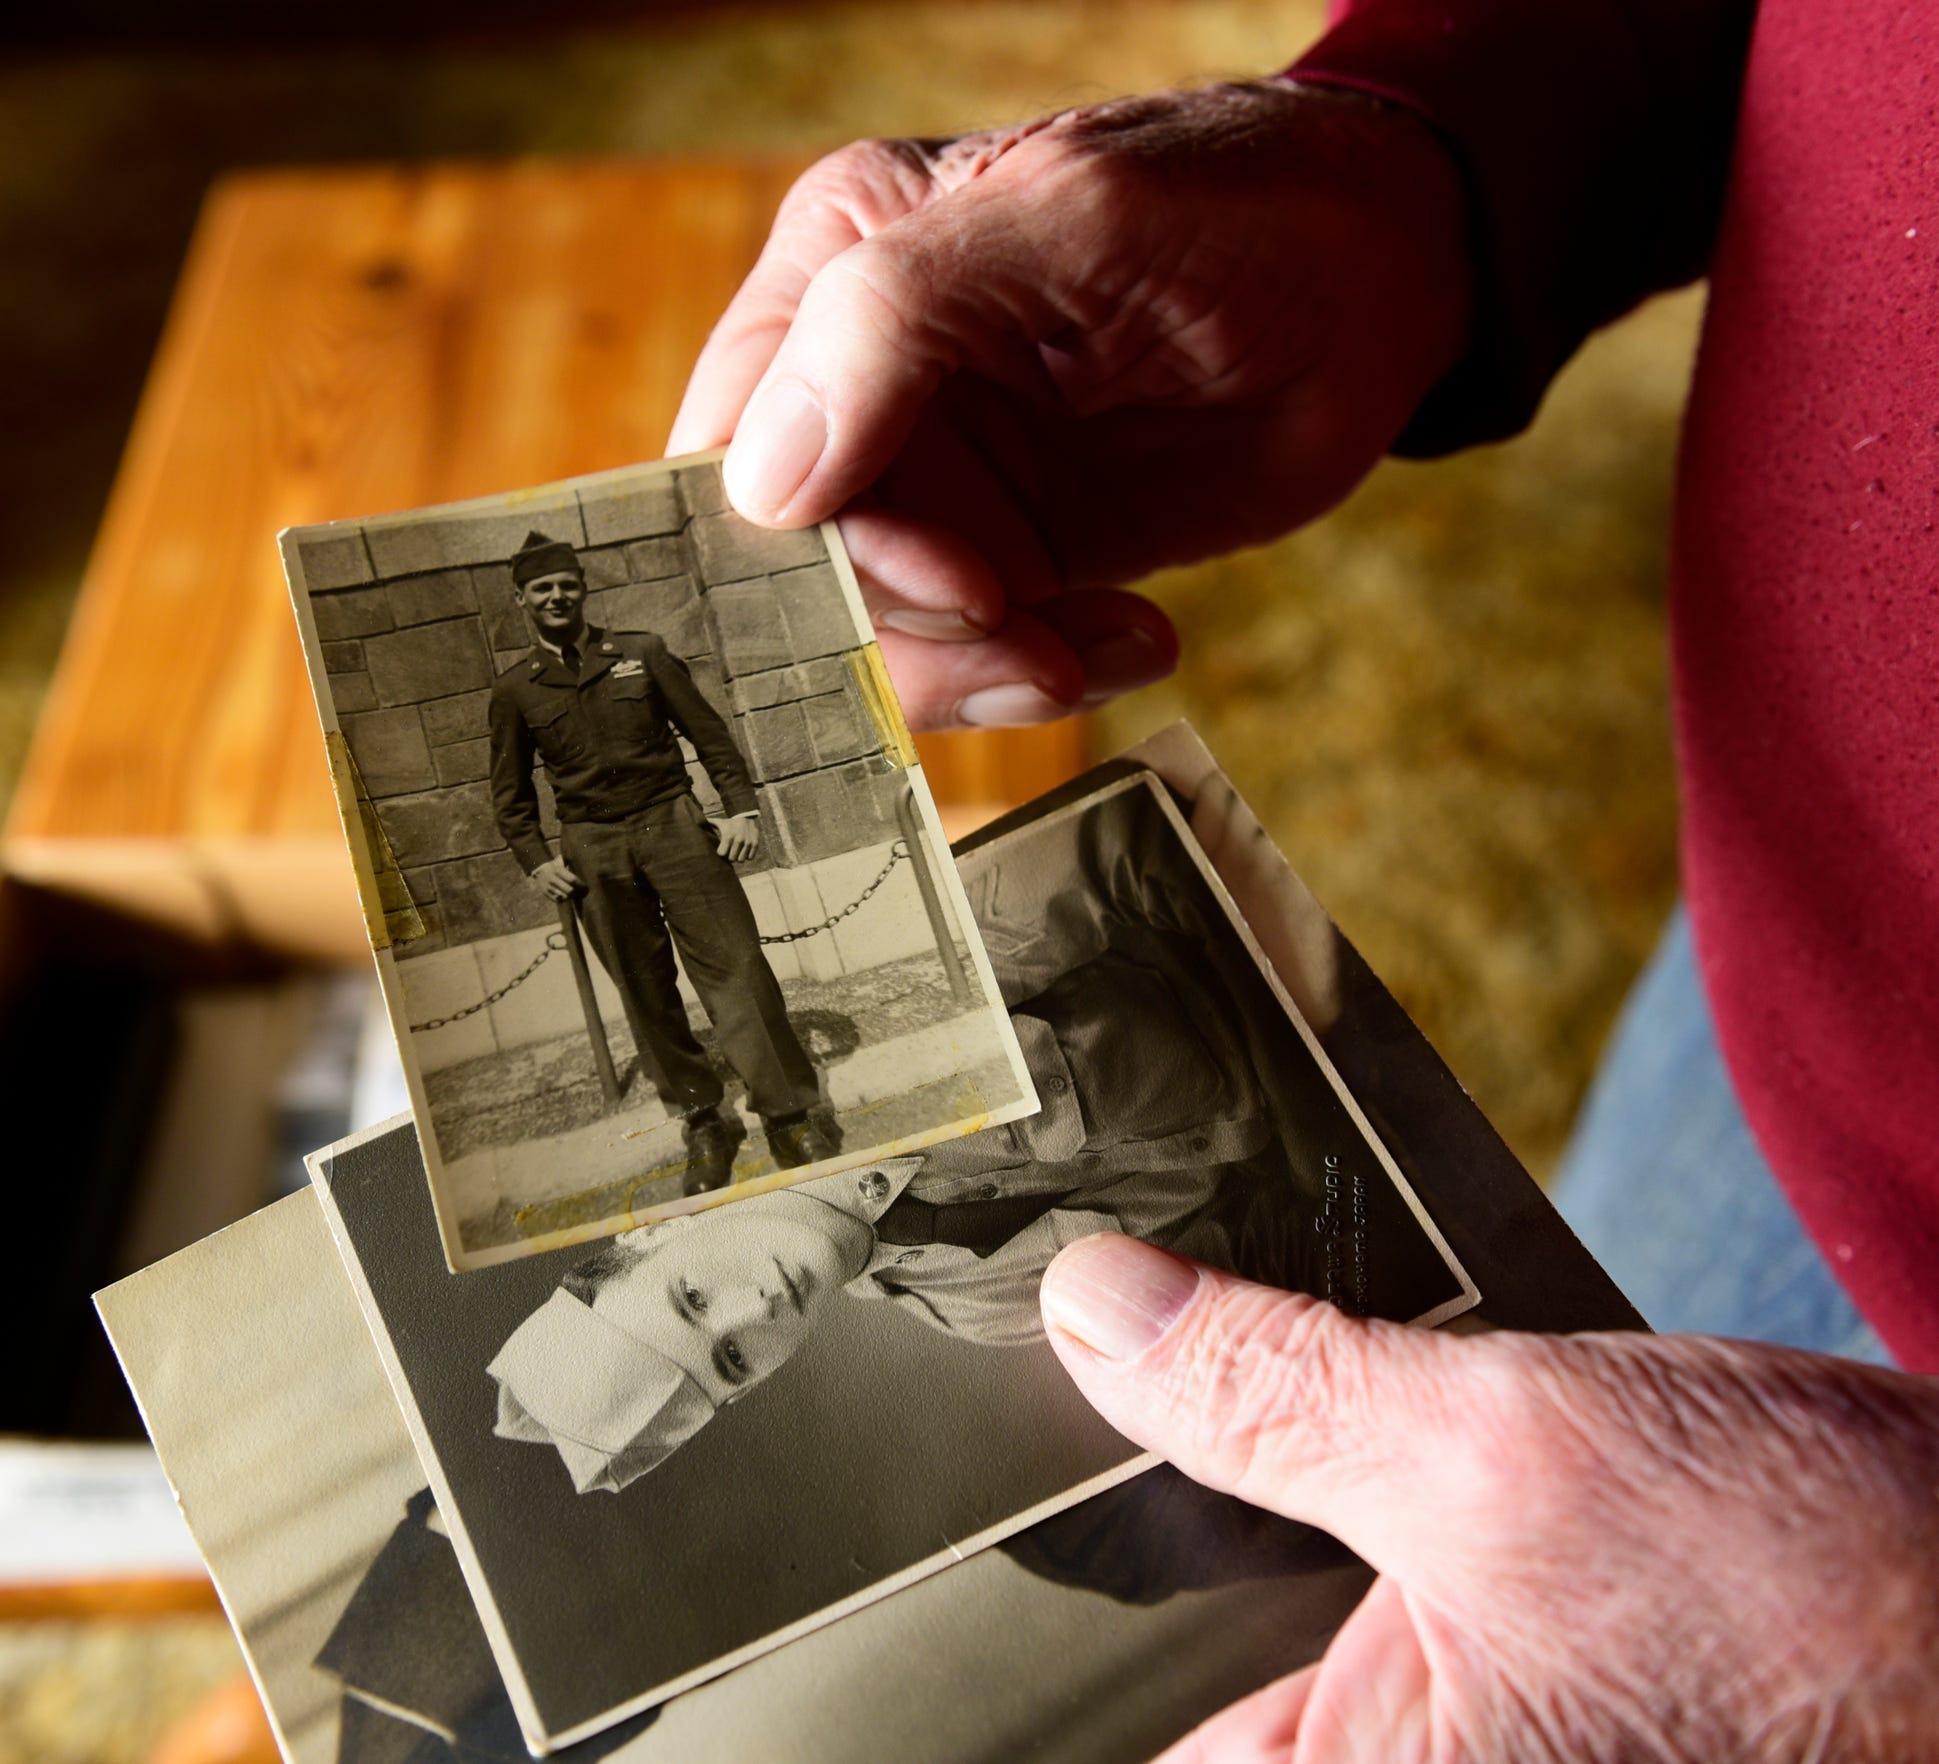 Edward Foose holds a photo of himself as a soldier during the Korean War. During the three years of fighting in Korea, more than 1.5 million Americans were drafted for militaryservice.